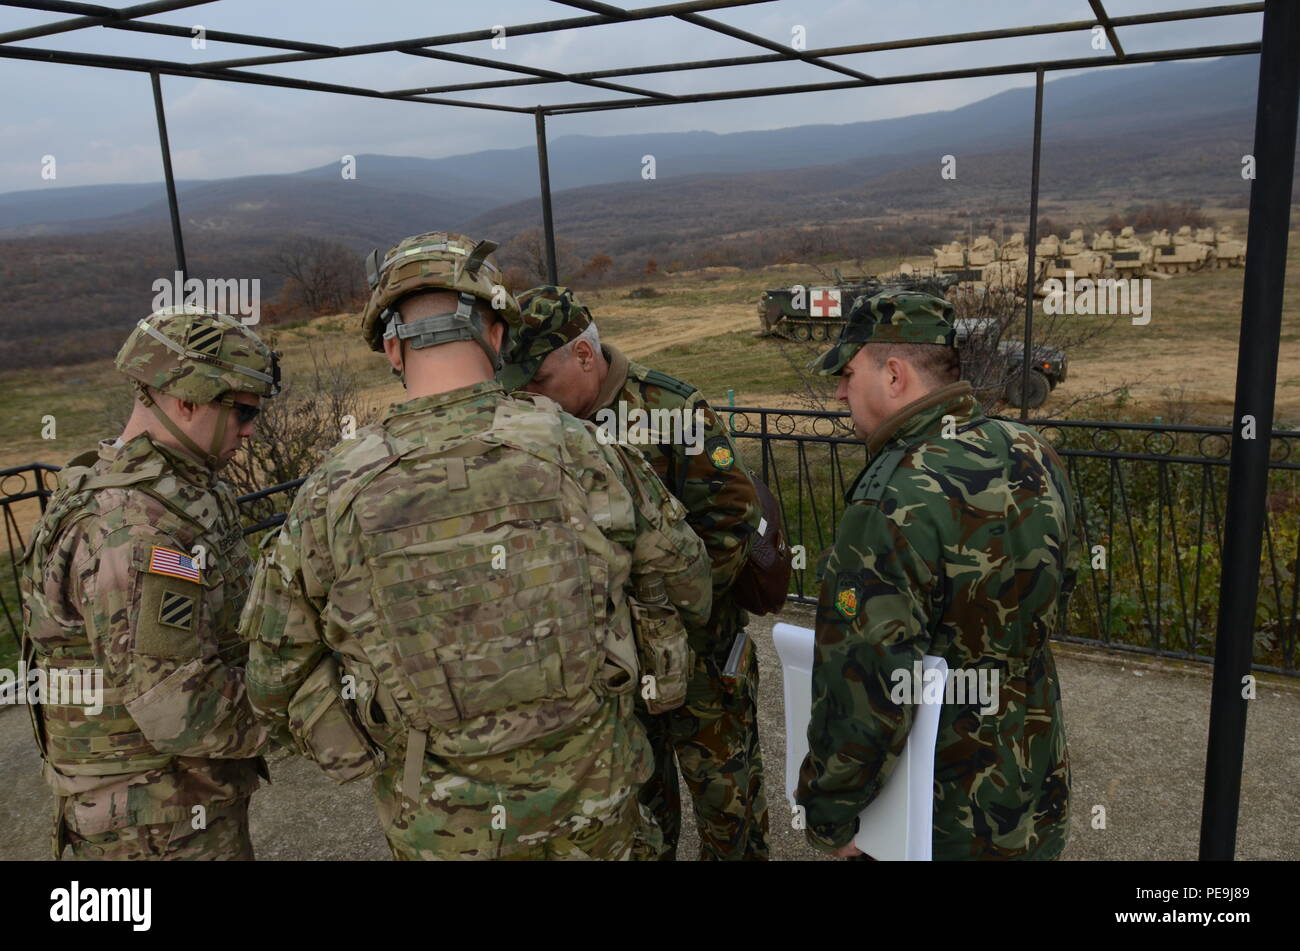 Bulgarian and U.S. Army key leaders discuss the areas in which the soldiers will conduct a series of tactical movements during Exercise Peace Sentinel at Novo Selo Training Center, Bulgaria, Nov. 21, 2015. Peace Sentinel is a joint exercise that focuses on interoperability between the Bulgarian and U.S. forces. (Photo by Staff Sgt. Steven M. Colvin/Released) - Stock Image